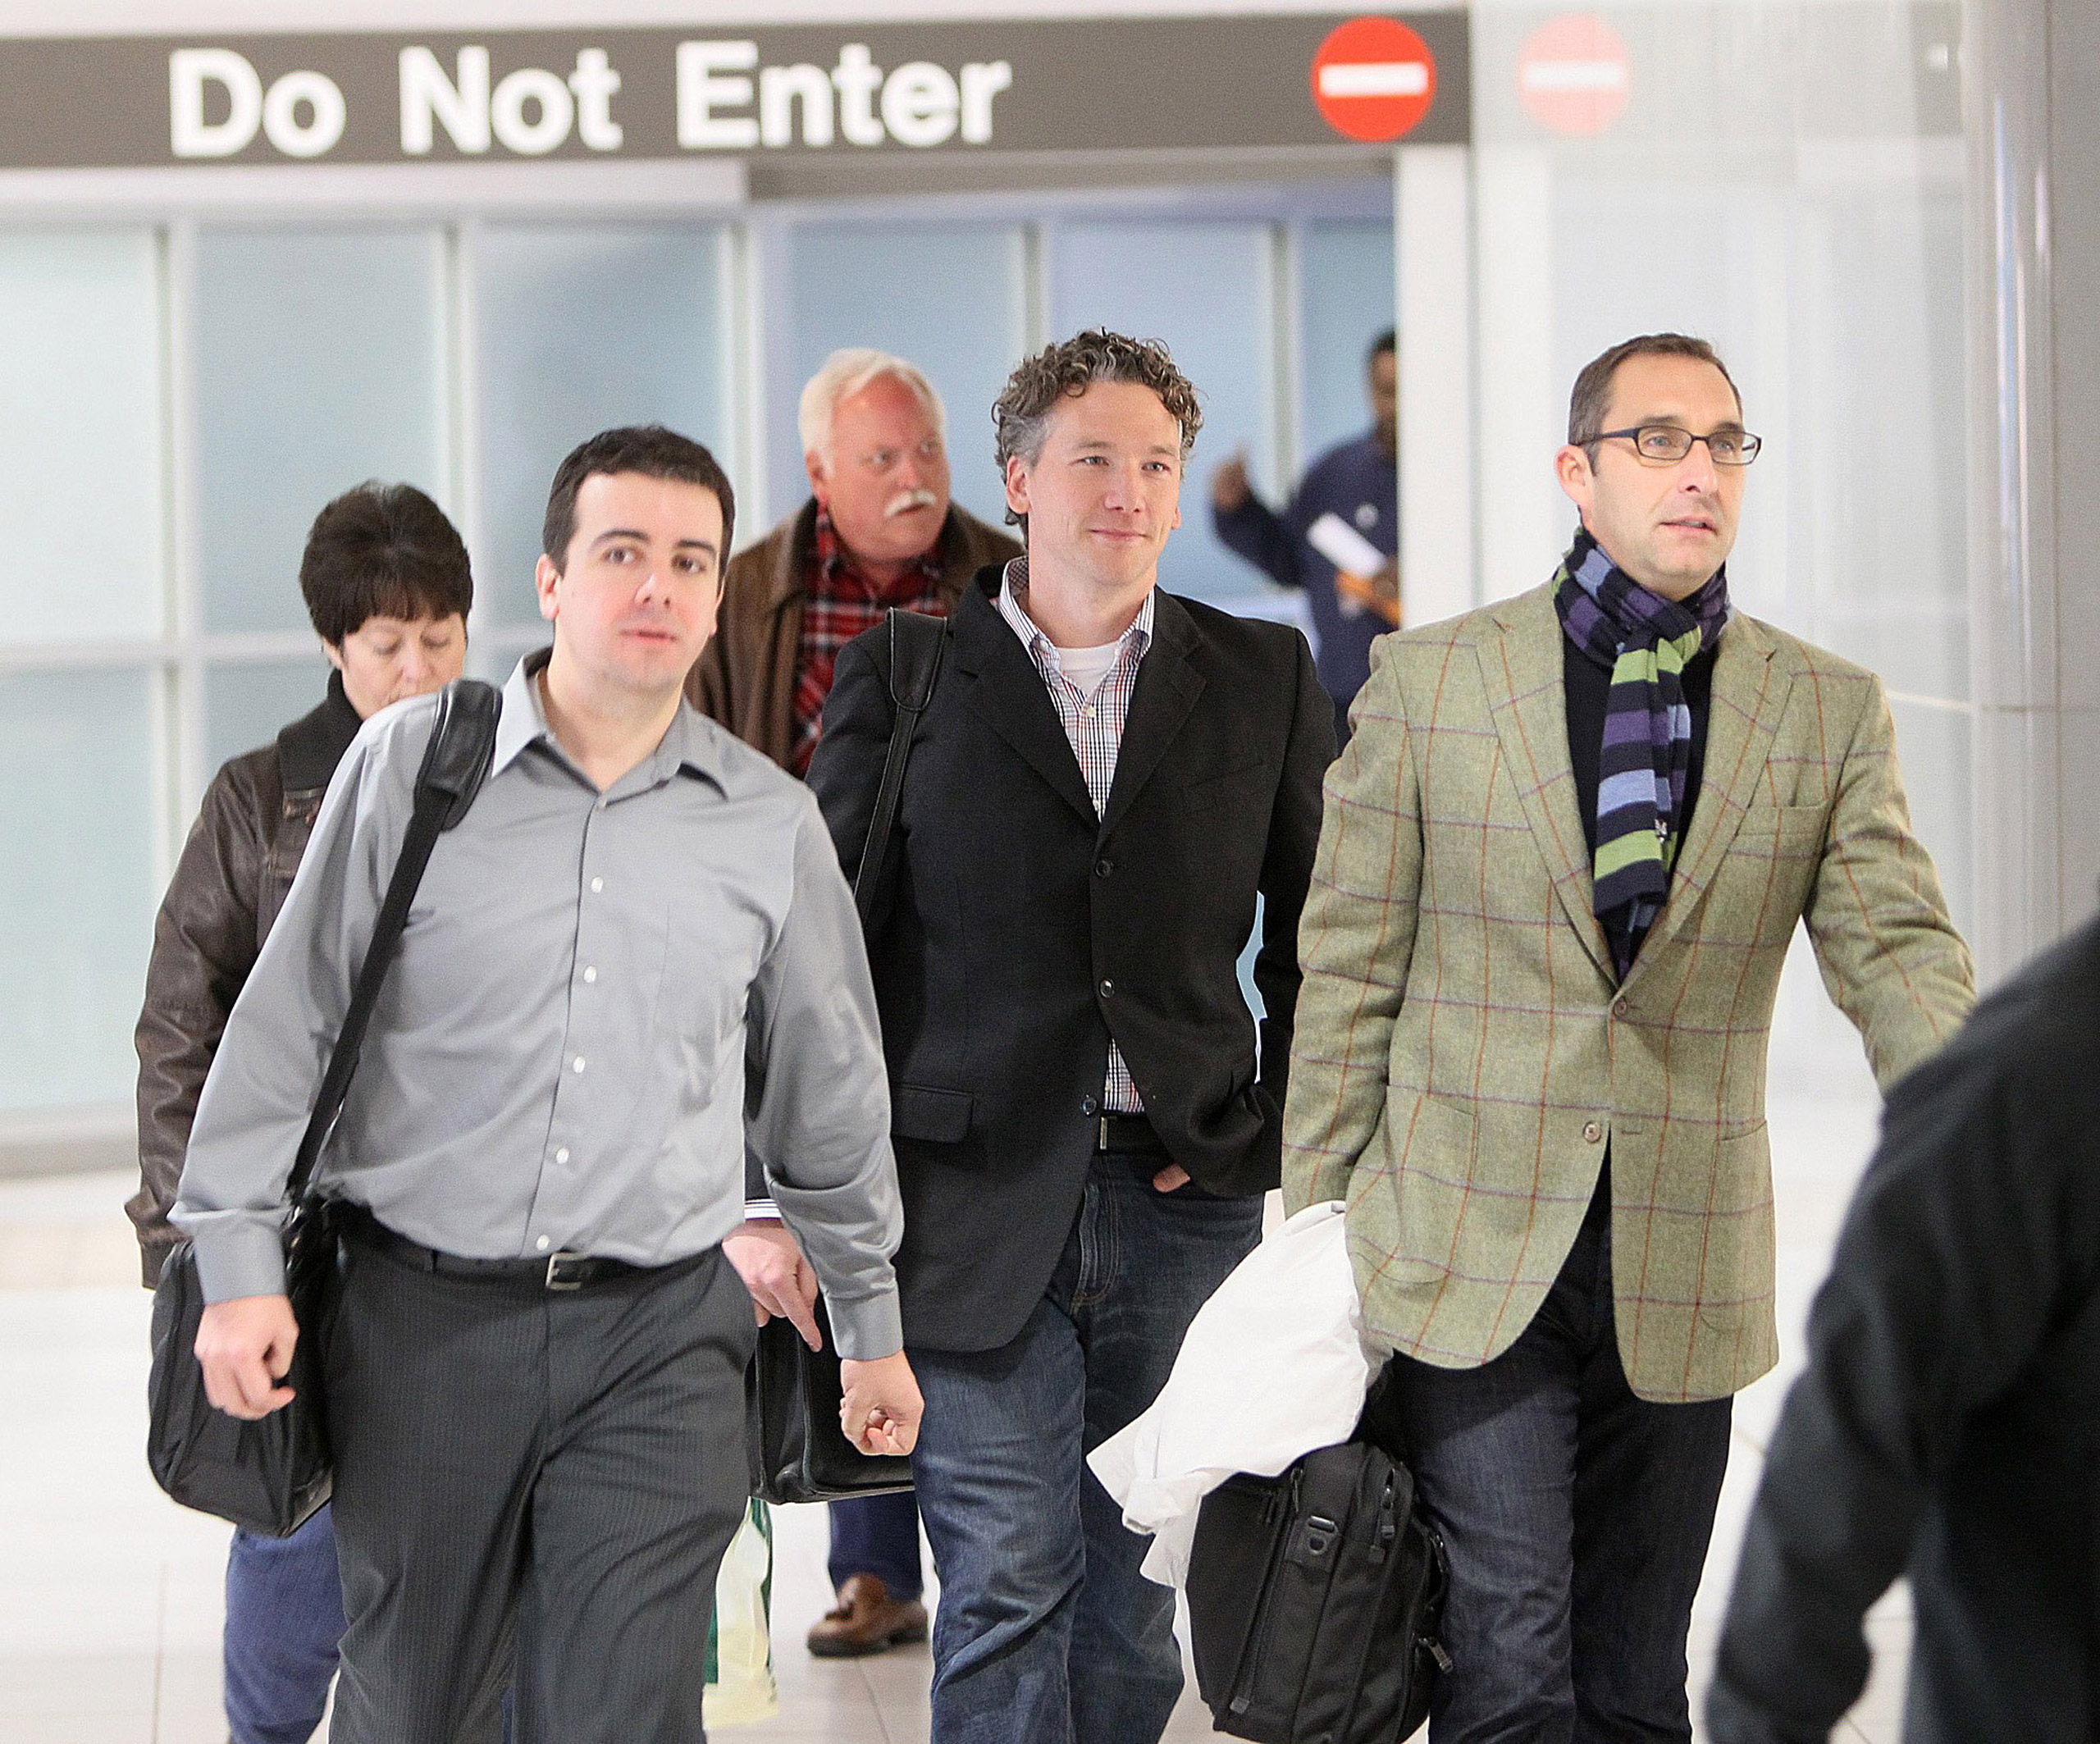 Then-St. Louis Cardinals scouting director Christopher Correa (left), assistant general manager Mike Girsch and general manager John Mozeliak arrive at Lambert-St. Louis International Airport in St. Louis, Mo., on Dec. 8, 2011.